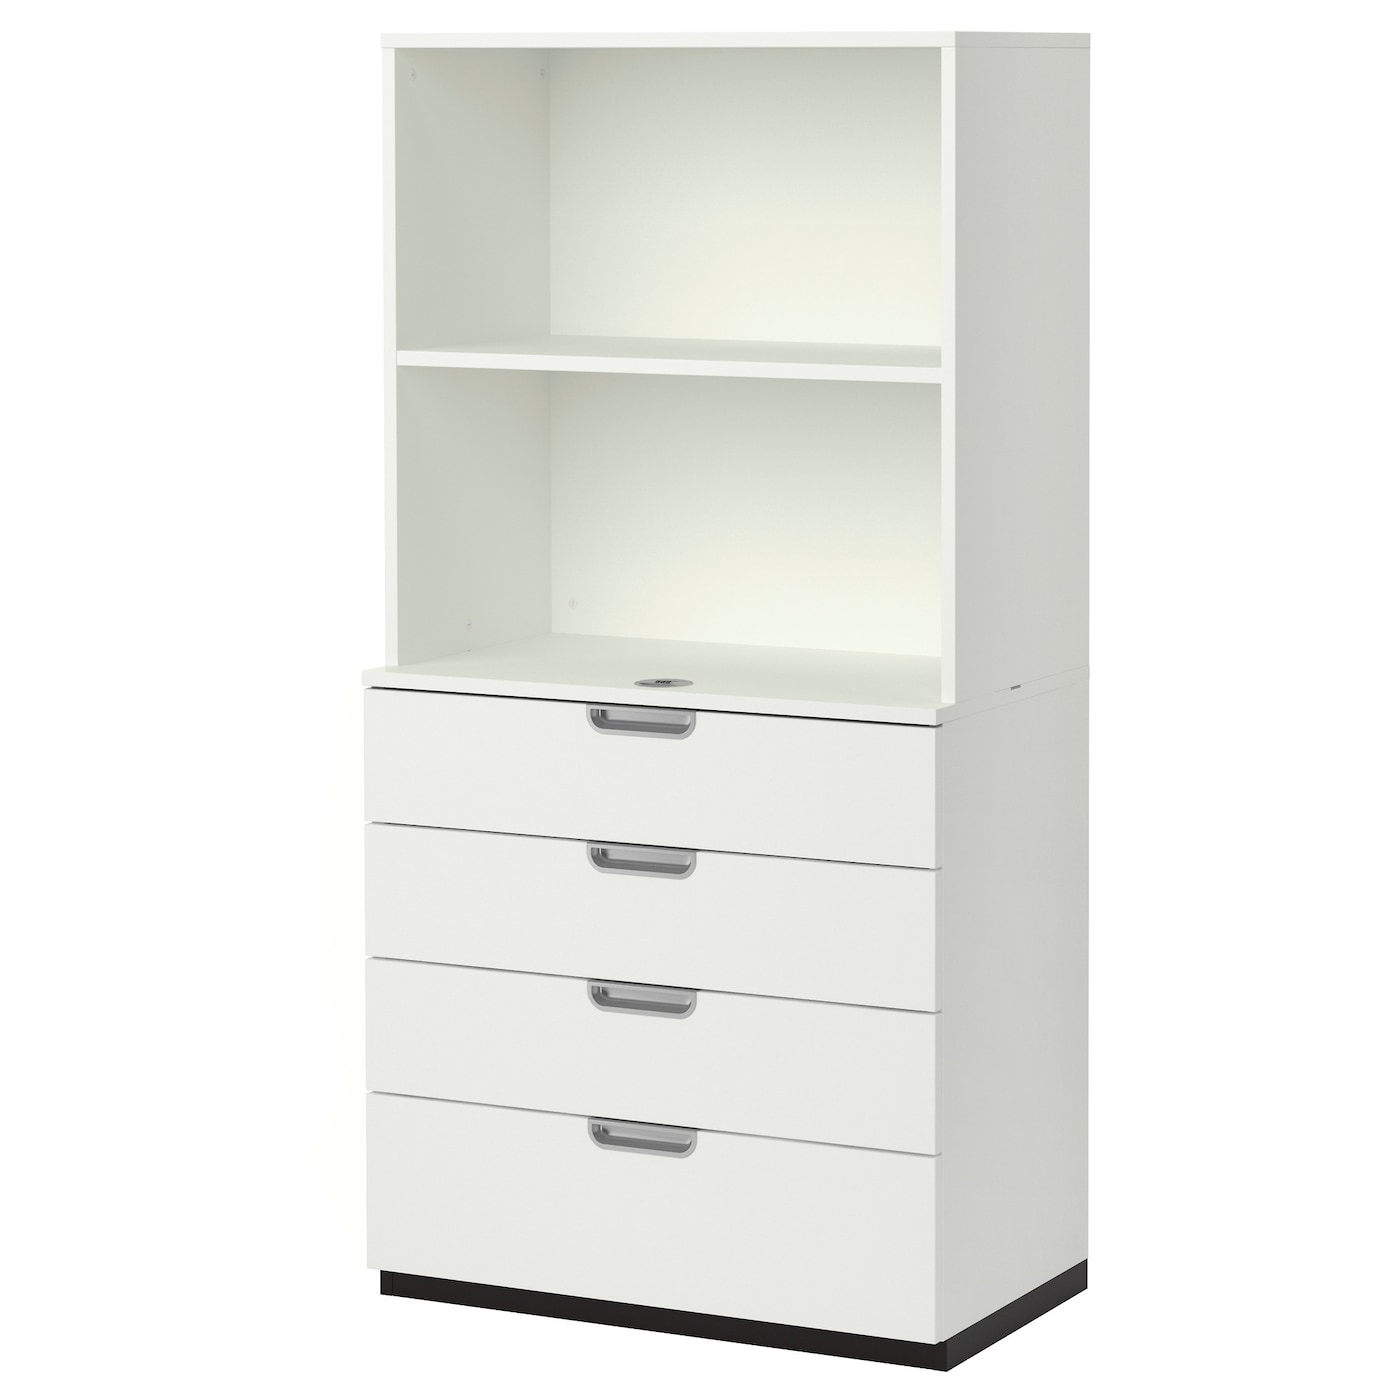 Galant storage combination with drawers white cm ikea